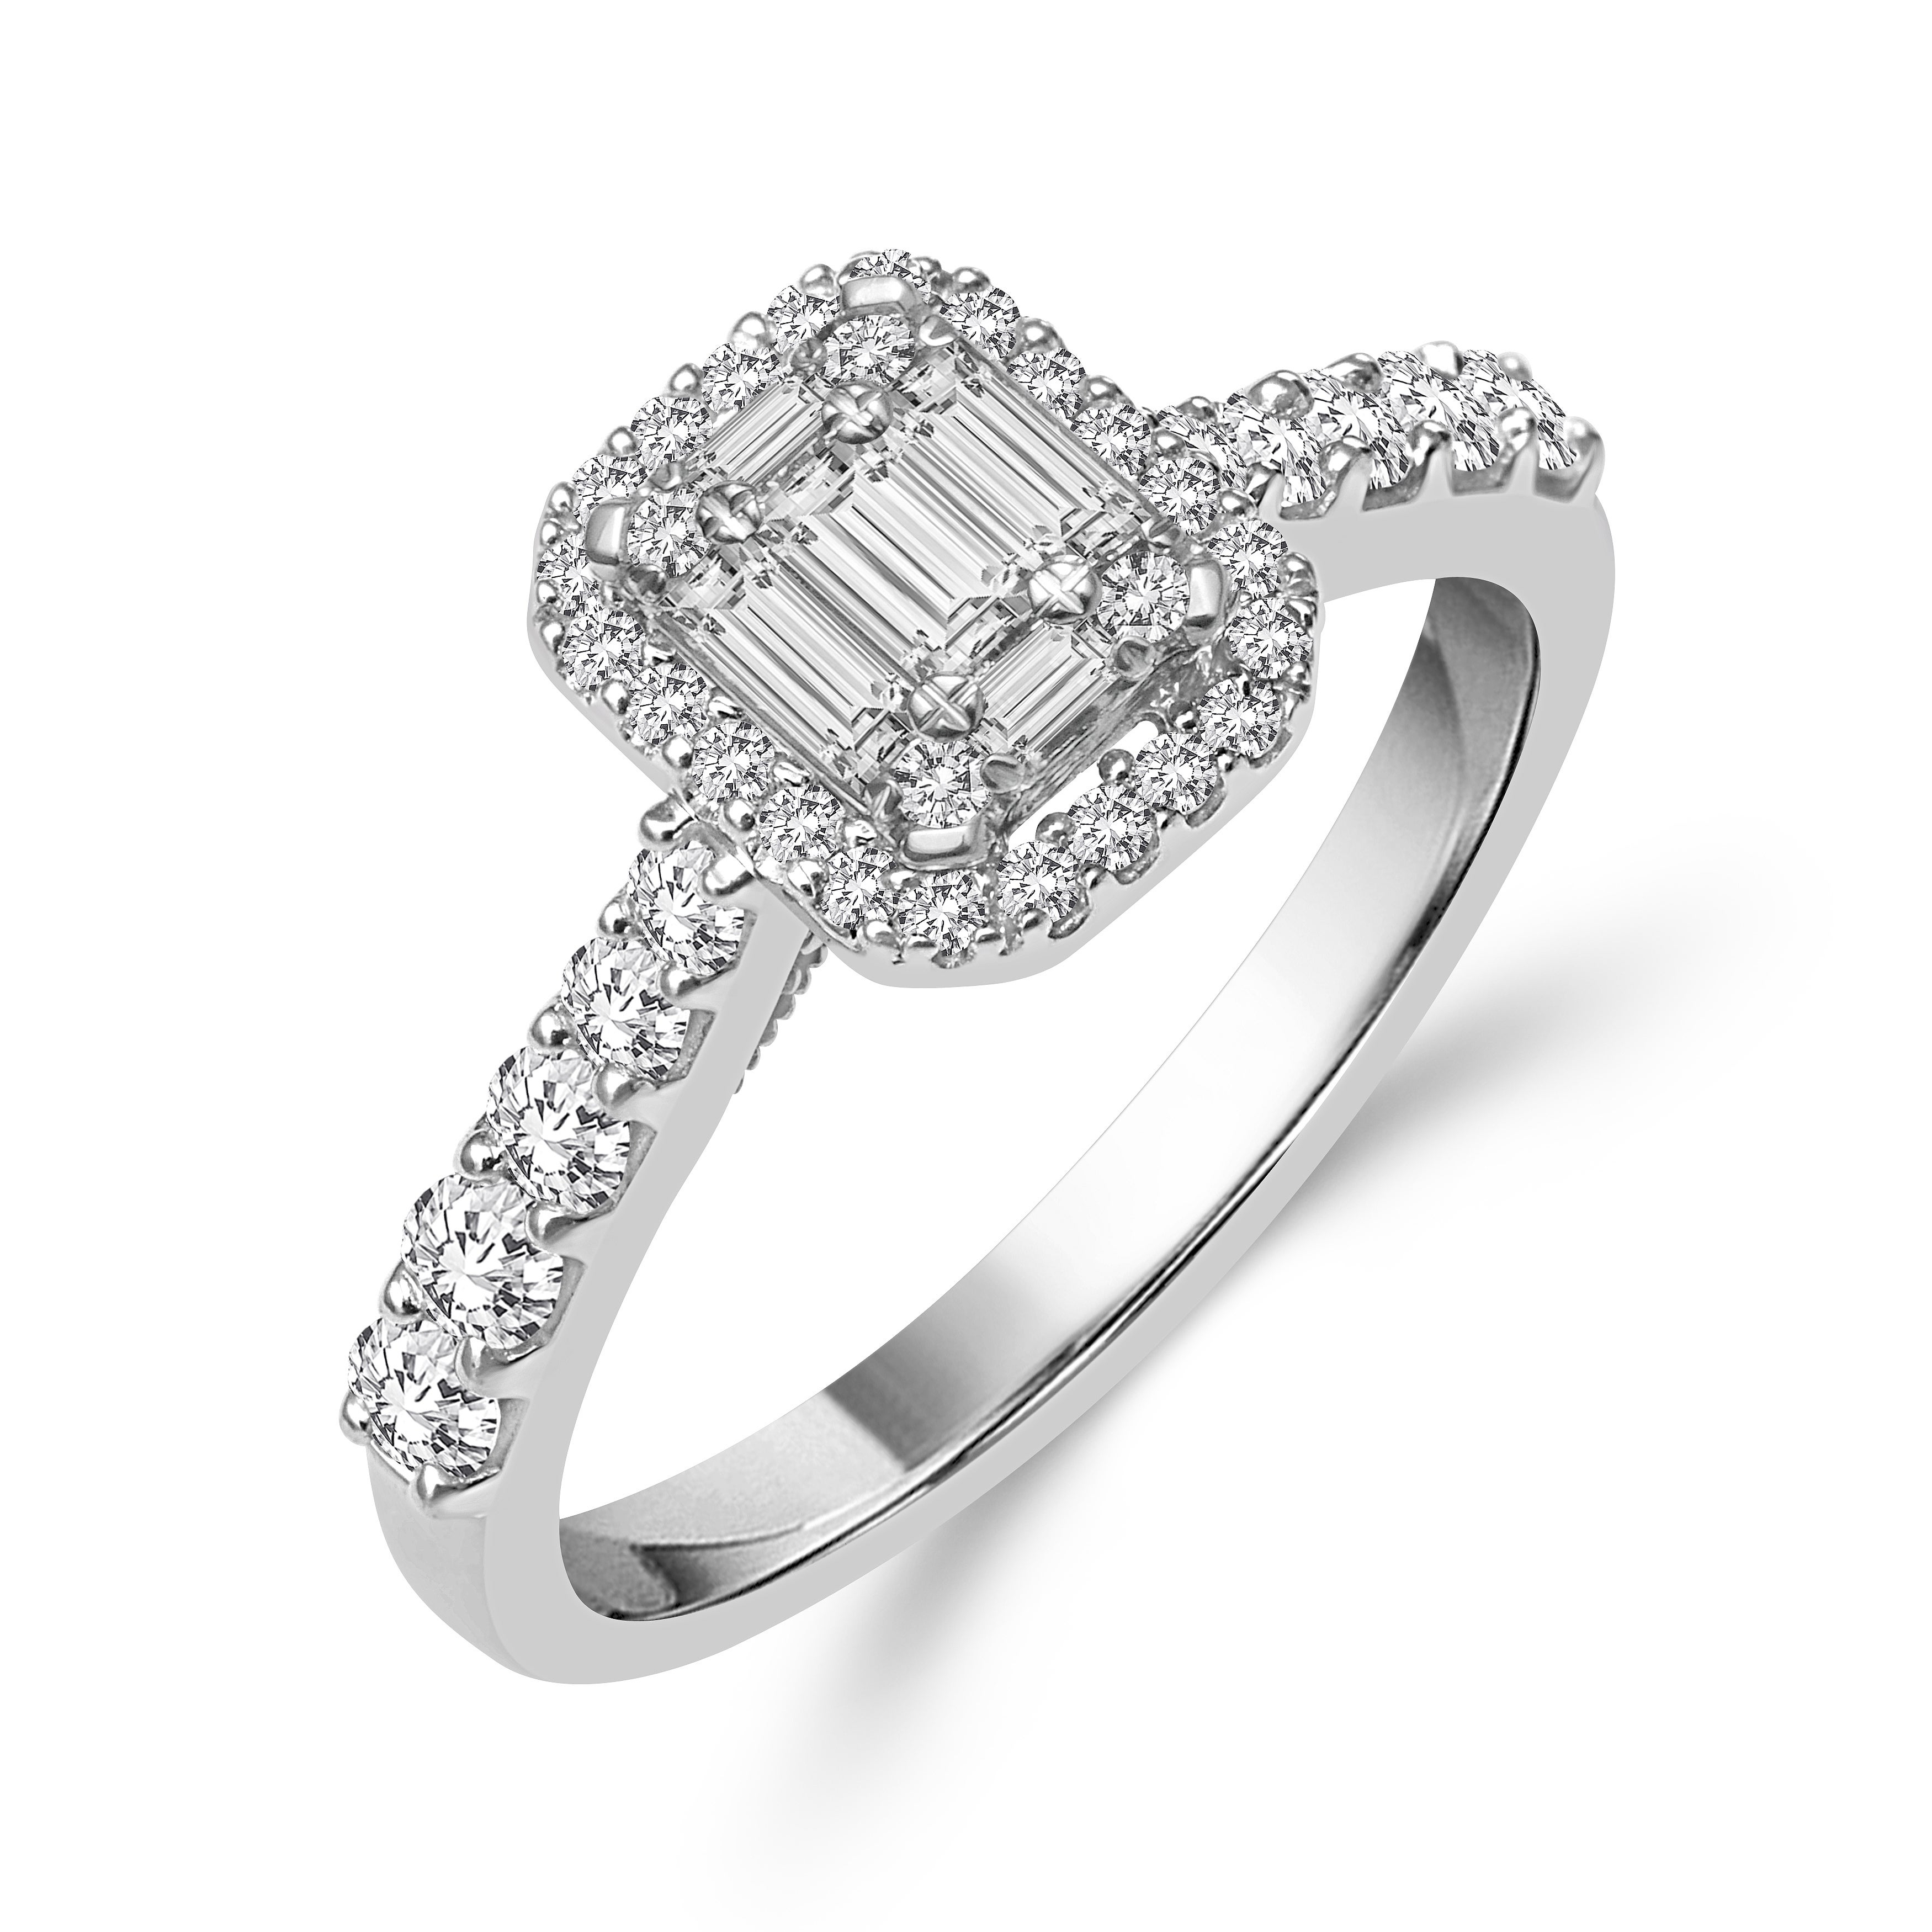 14k White Gold 3/4ct Tdw Emerald Shape Baguette Diamond Ring With Newest Composite Diamond Five Stone Anniversary Bands In White Gold (View 7 of 25)